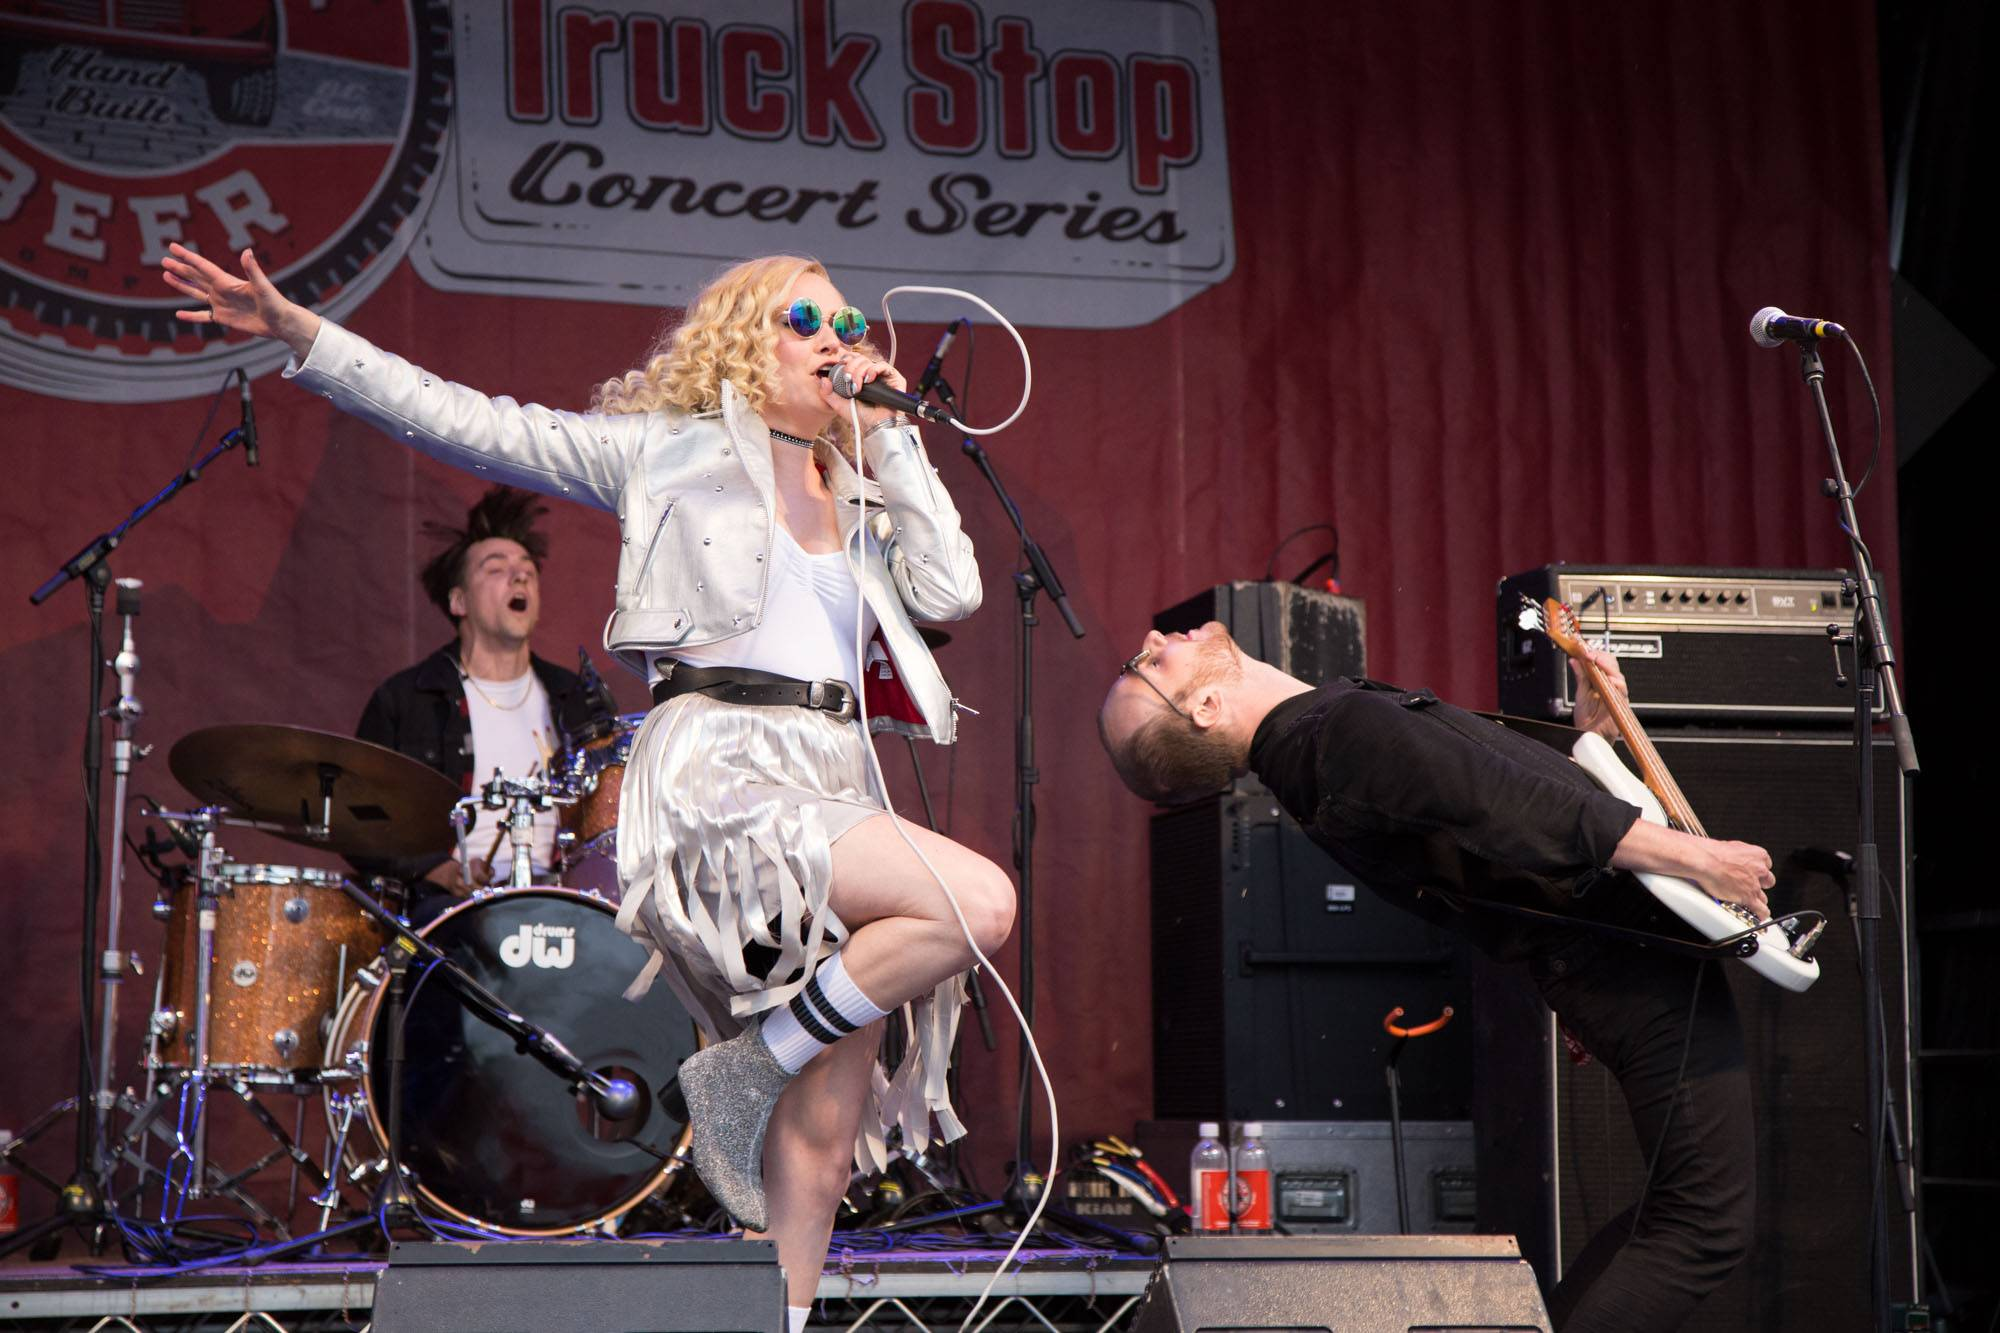 Youngblood at the 2017 Truck Stop Concert Series, Vancouver, Jun. 17 2017. Kirk Chantraine photo.